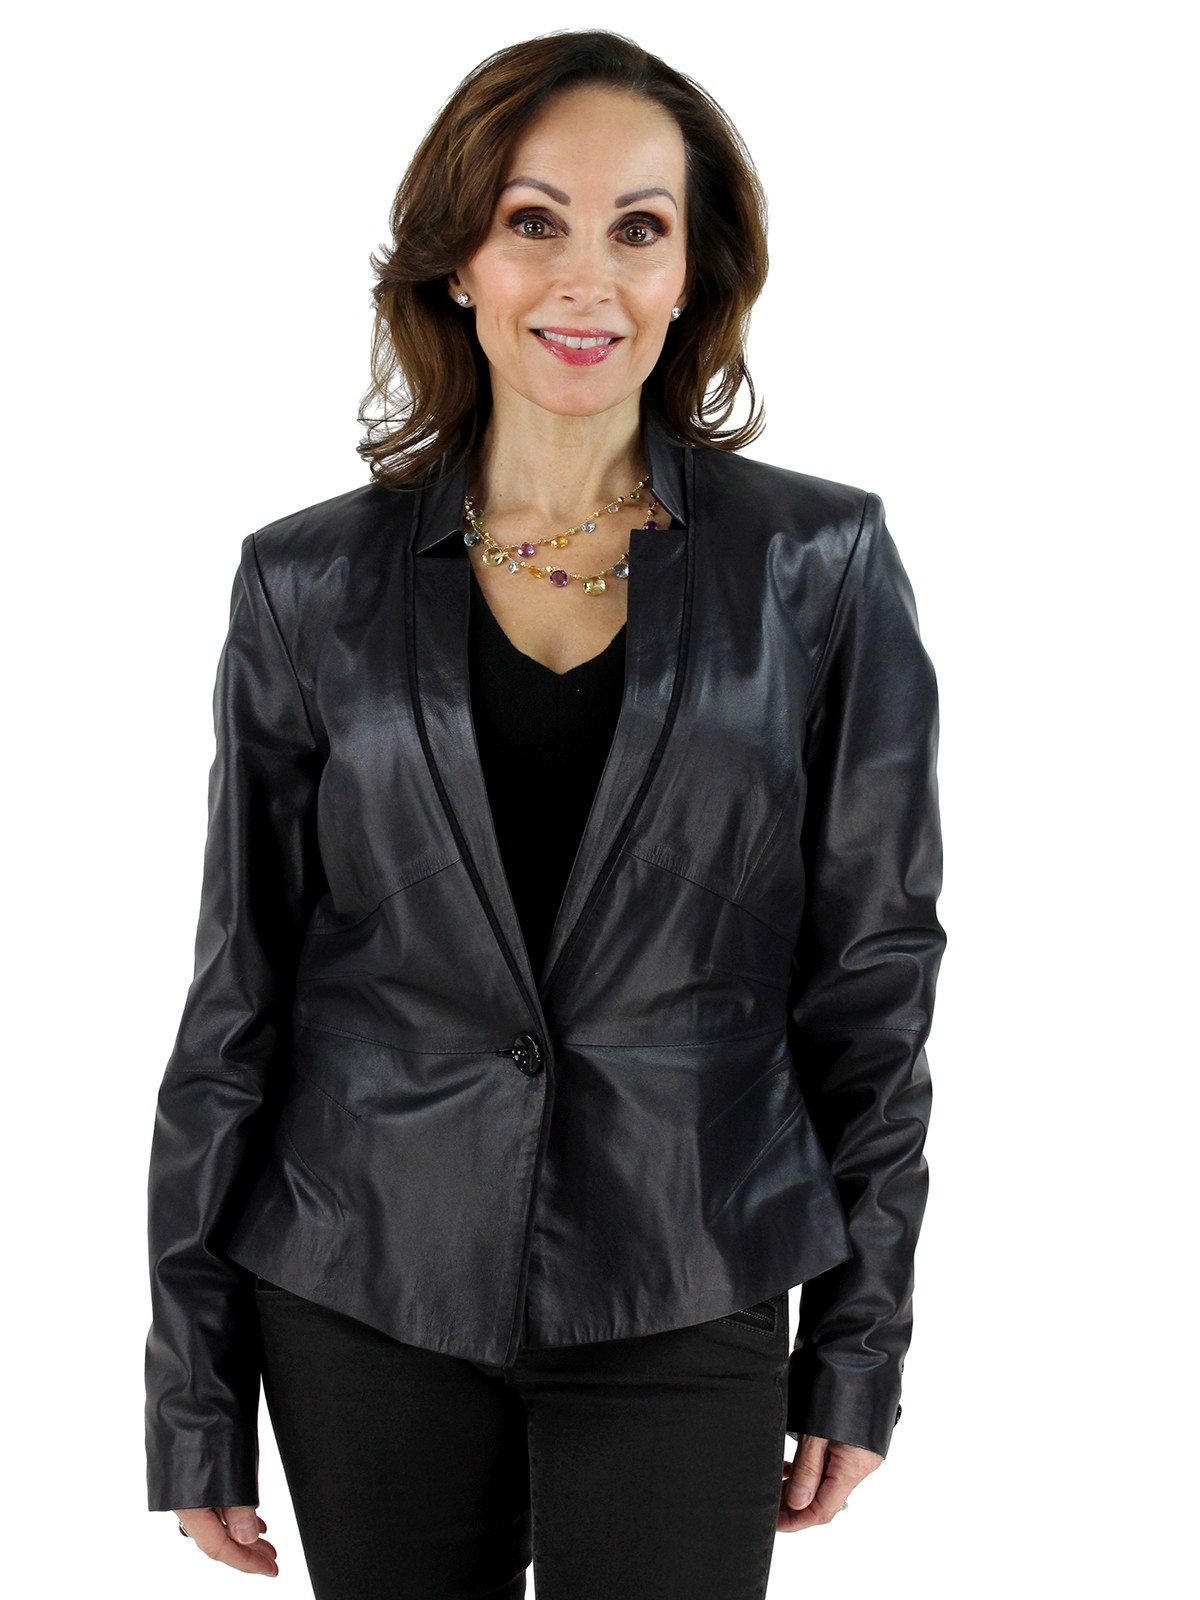 Woman's Navy Leather Jacket